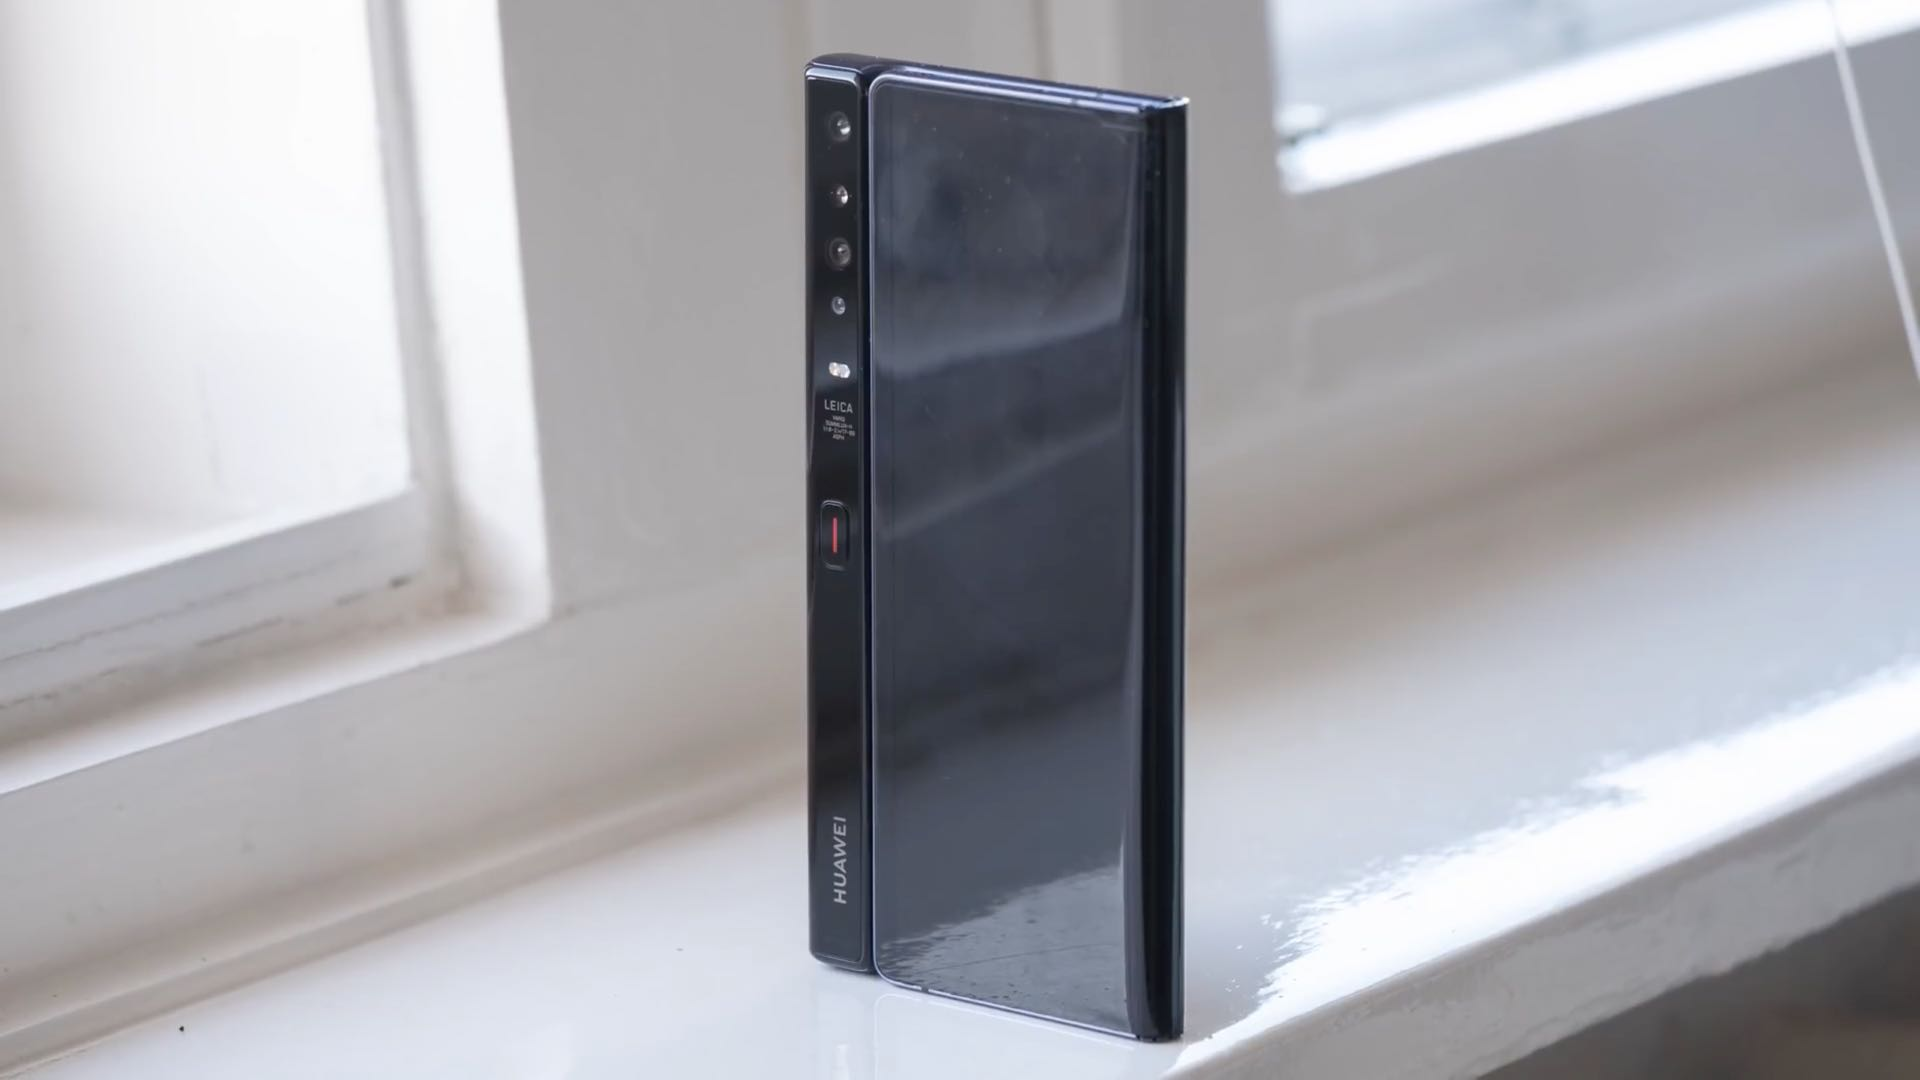 Huawei Mate X in full folded mode